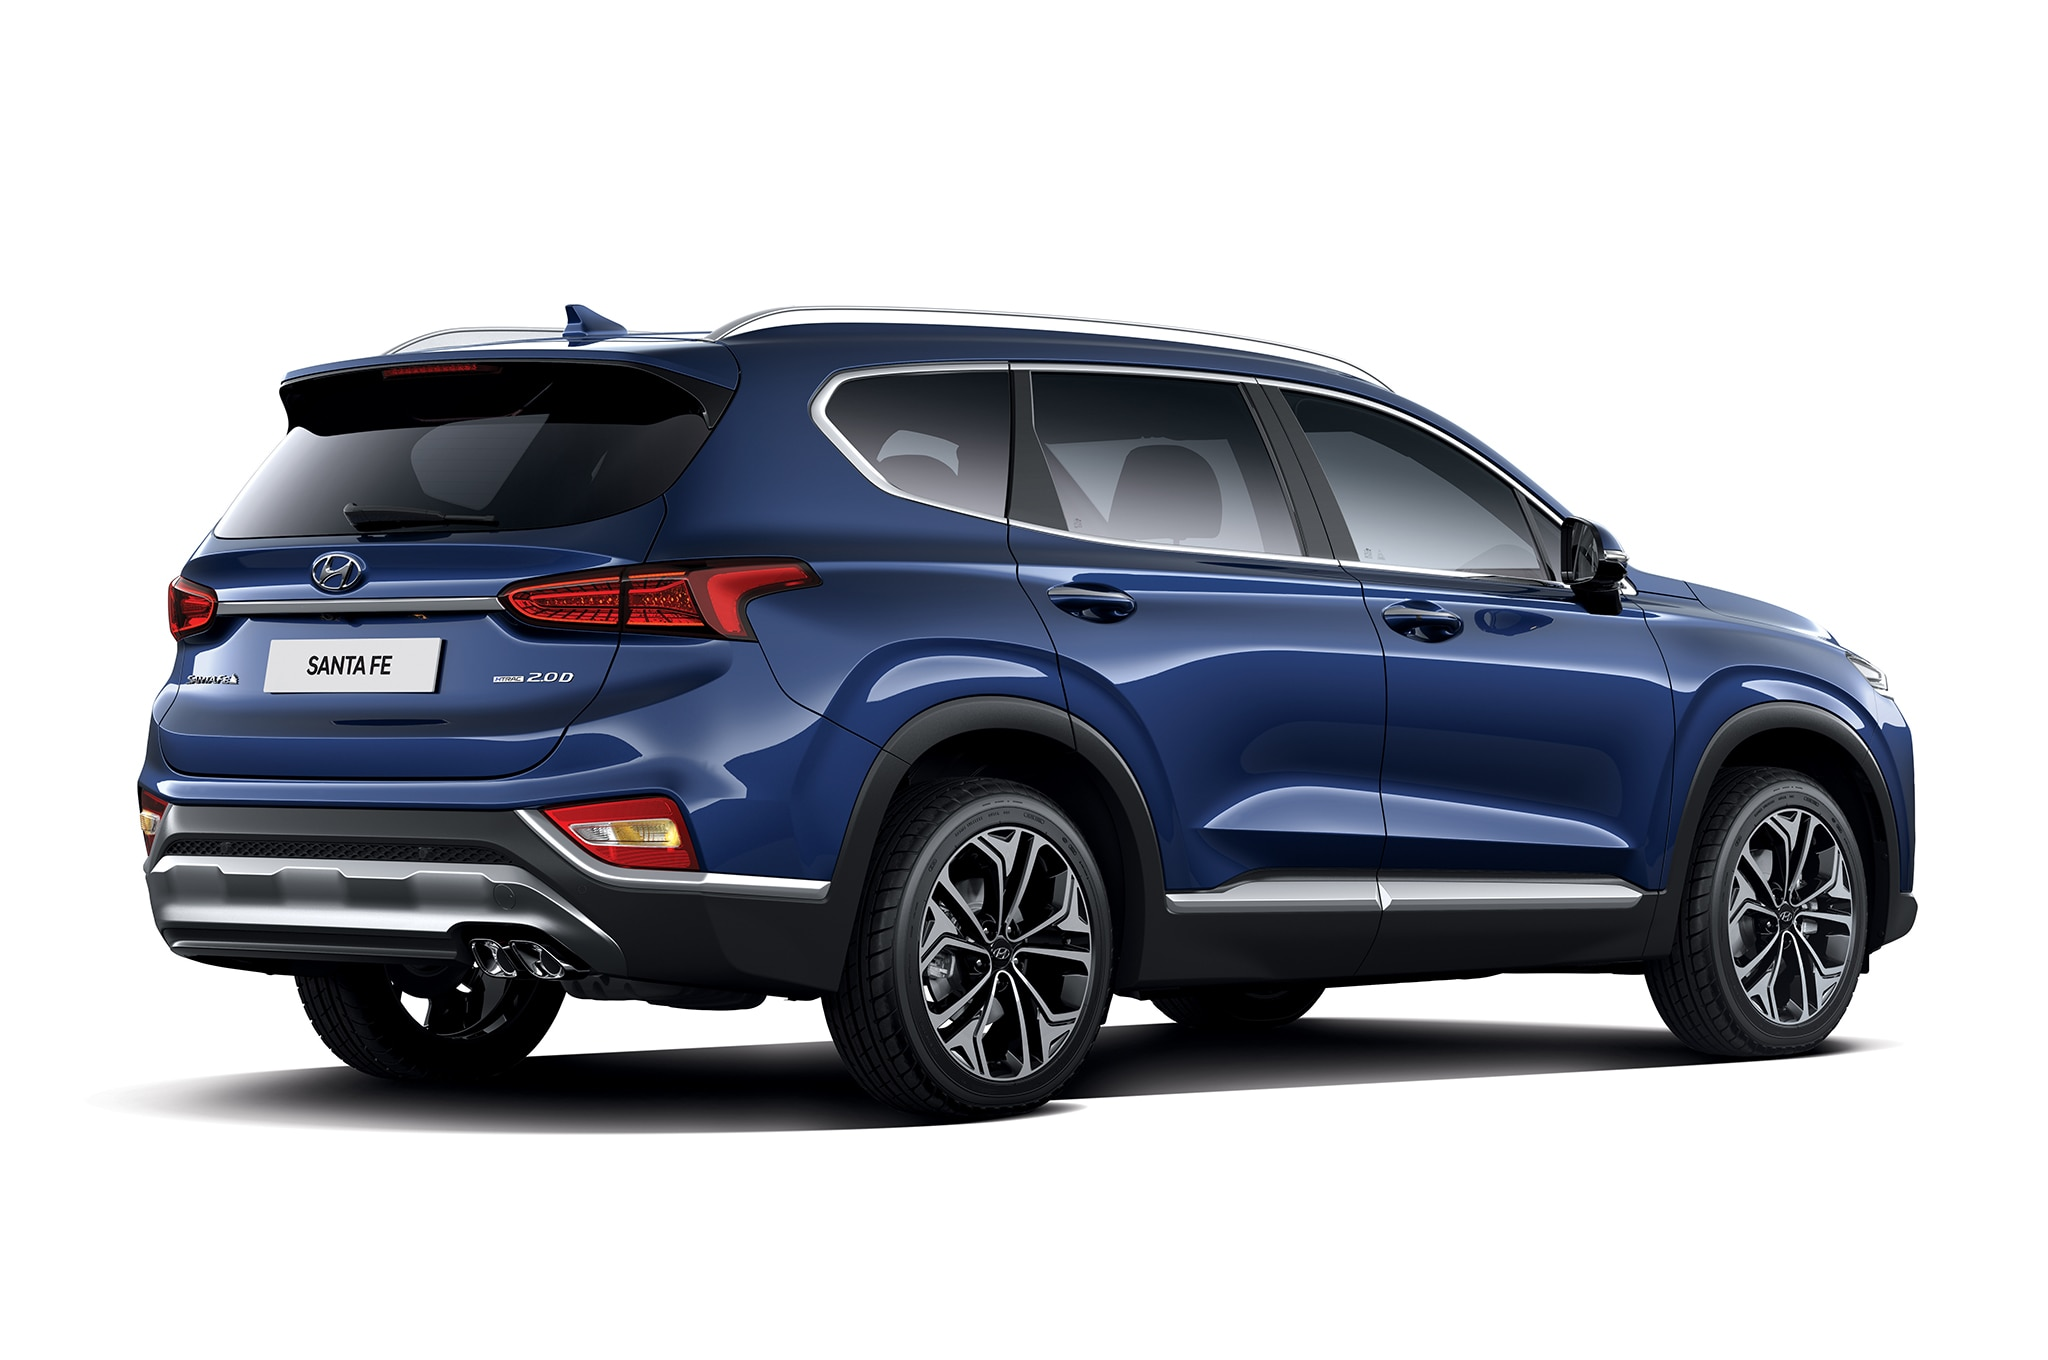 2019 Hyundai Santa Fe Getting a Diesel Option